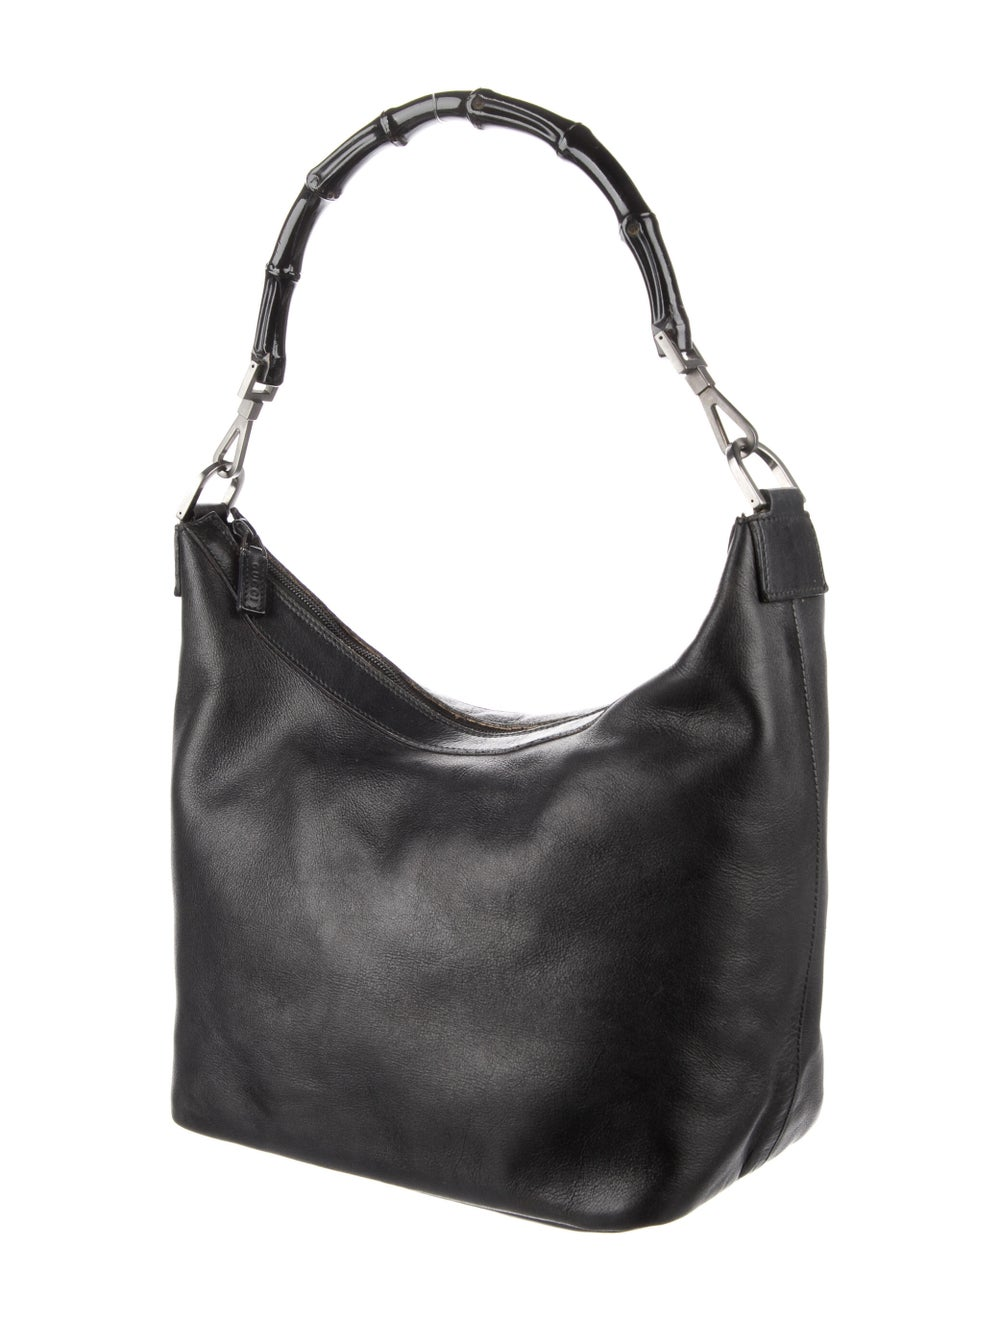 Gucci Vintage Leather Diana Bamboo Handle Hobo Bl… - image 3